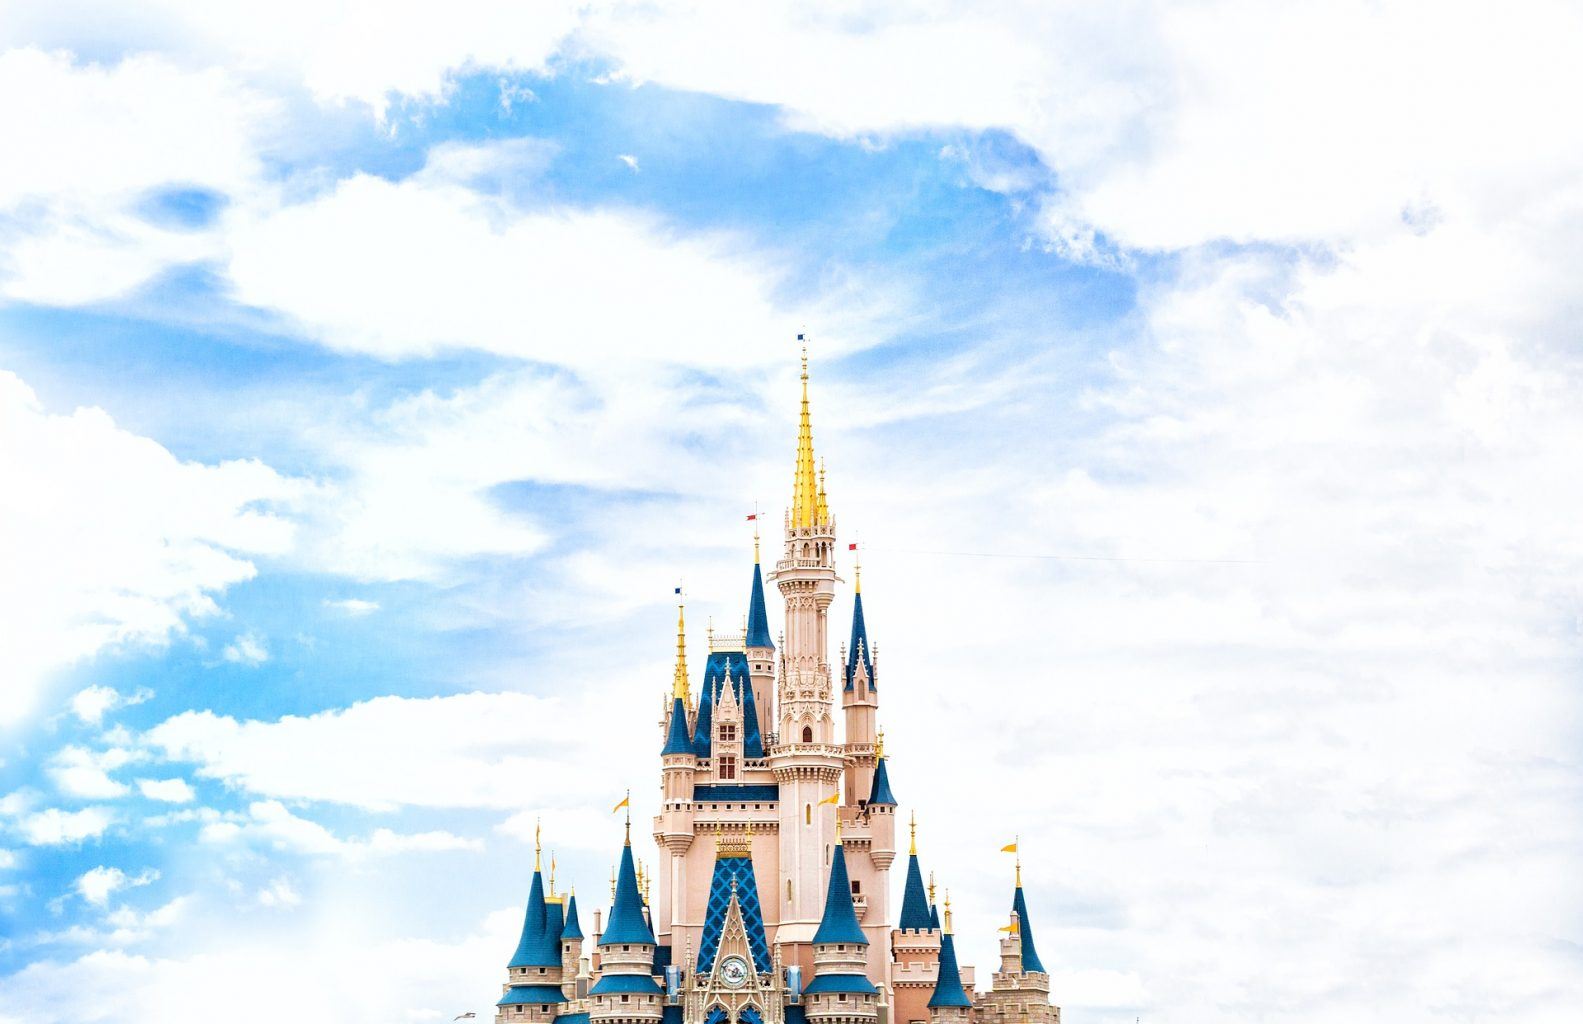 The Castle at Magic Kingdom is iconic!